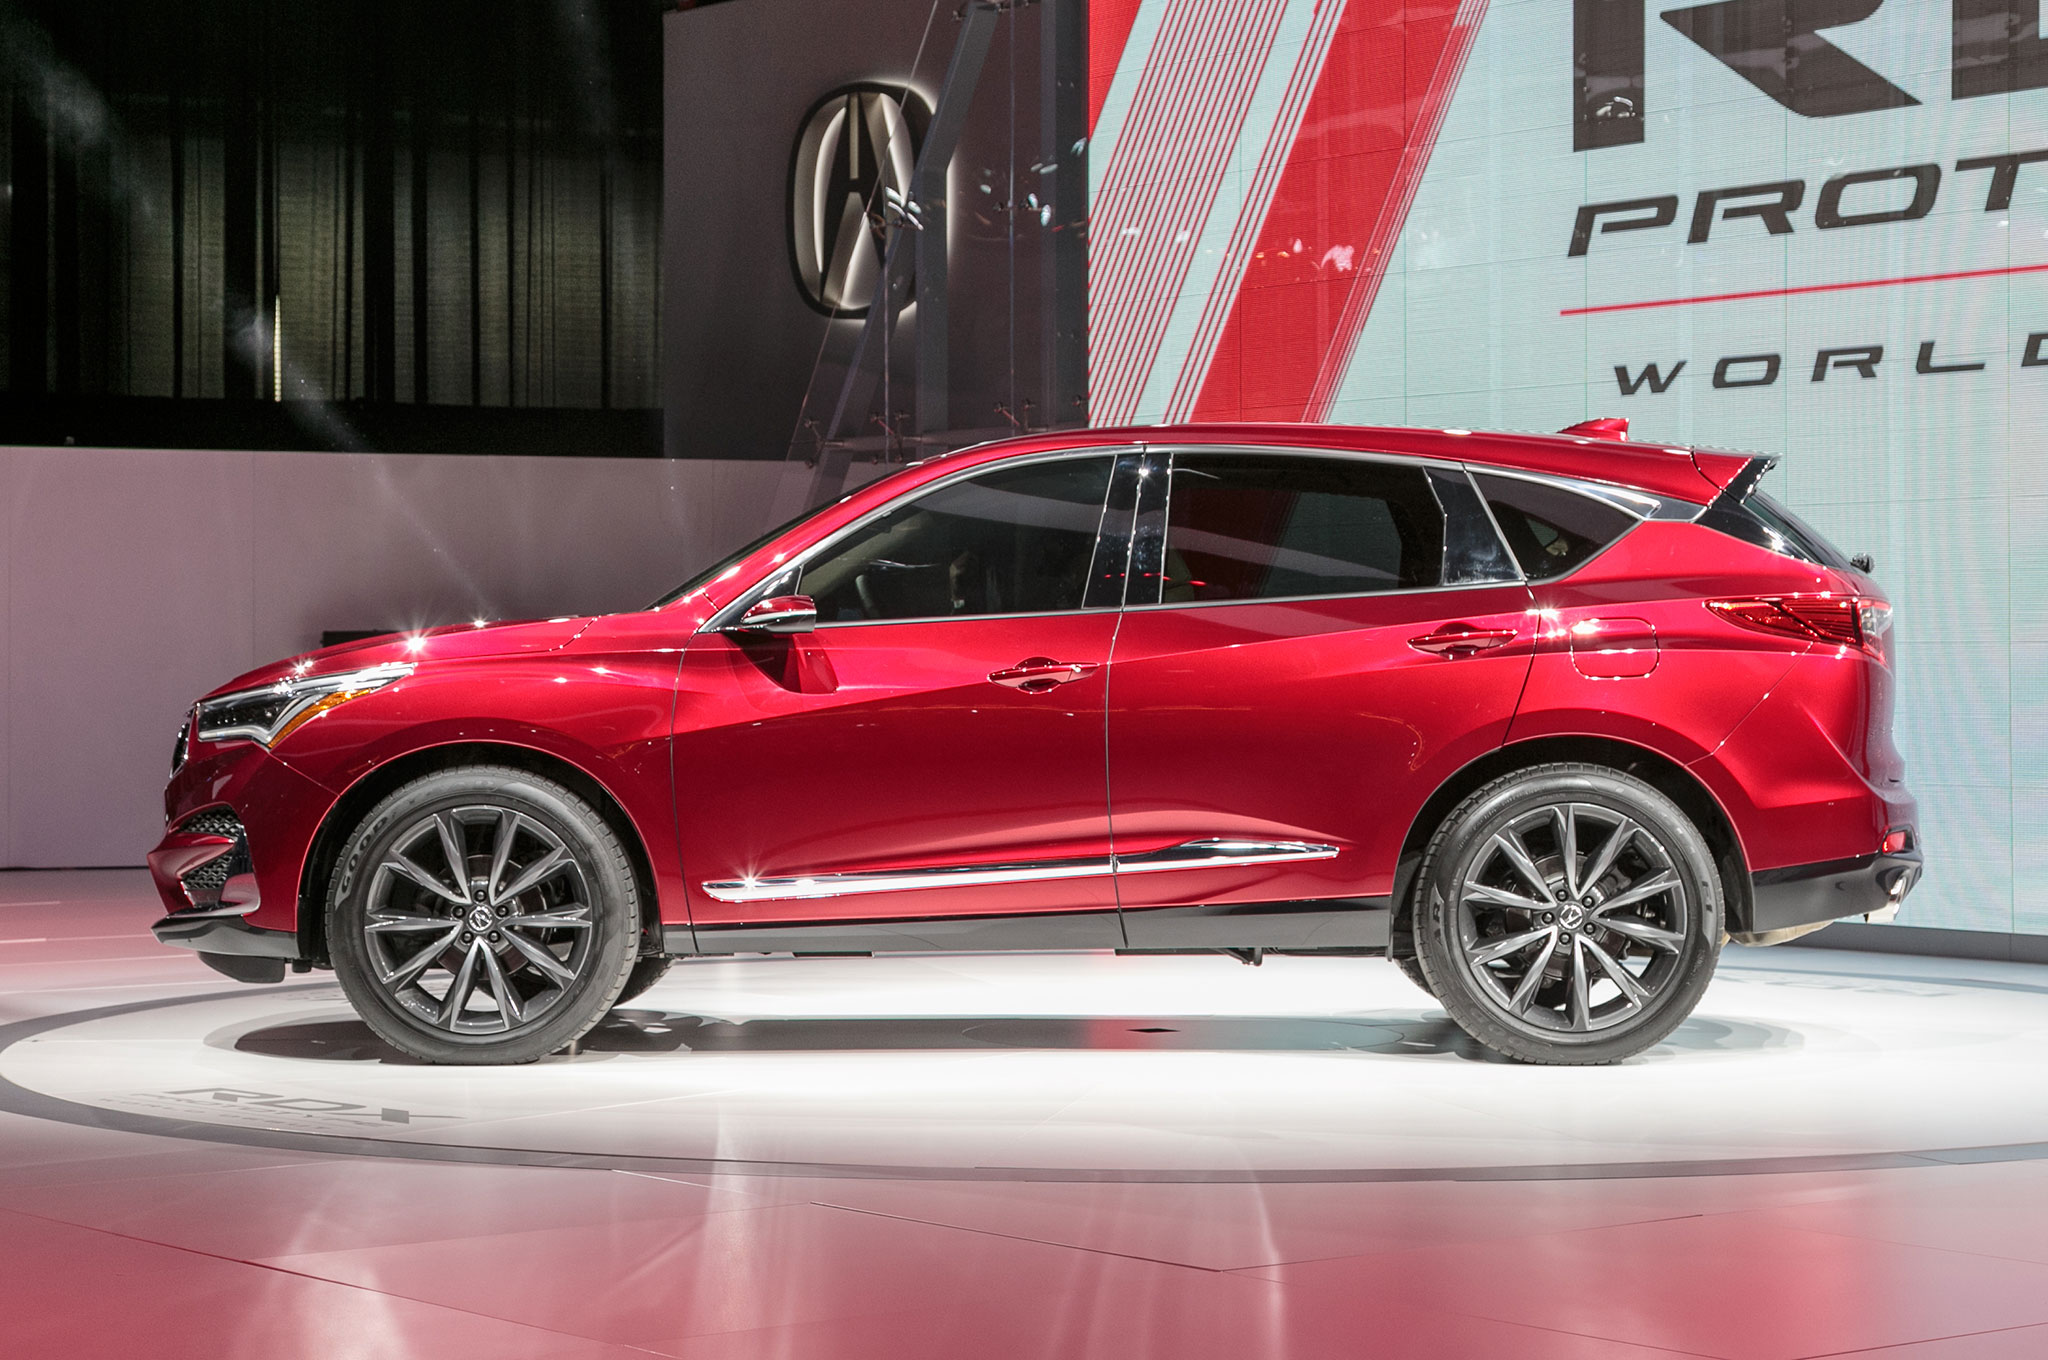 2019 Acura RDX Prototype Side View